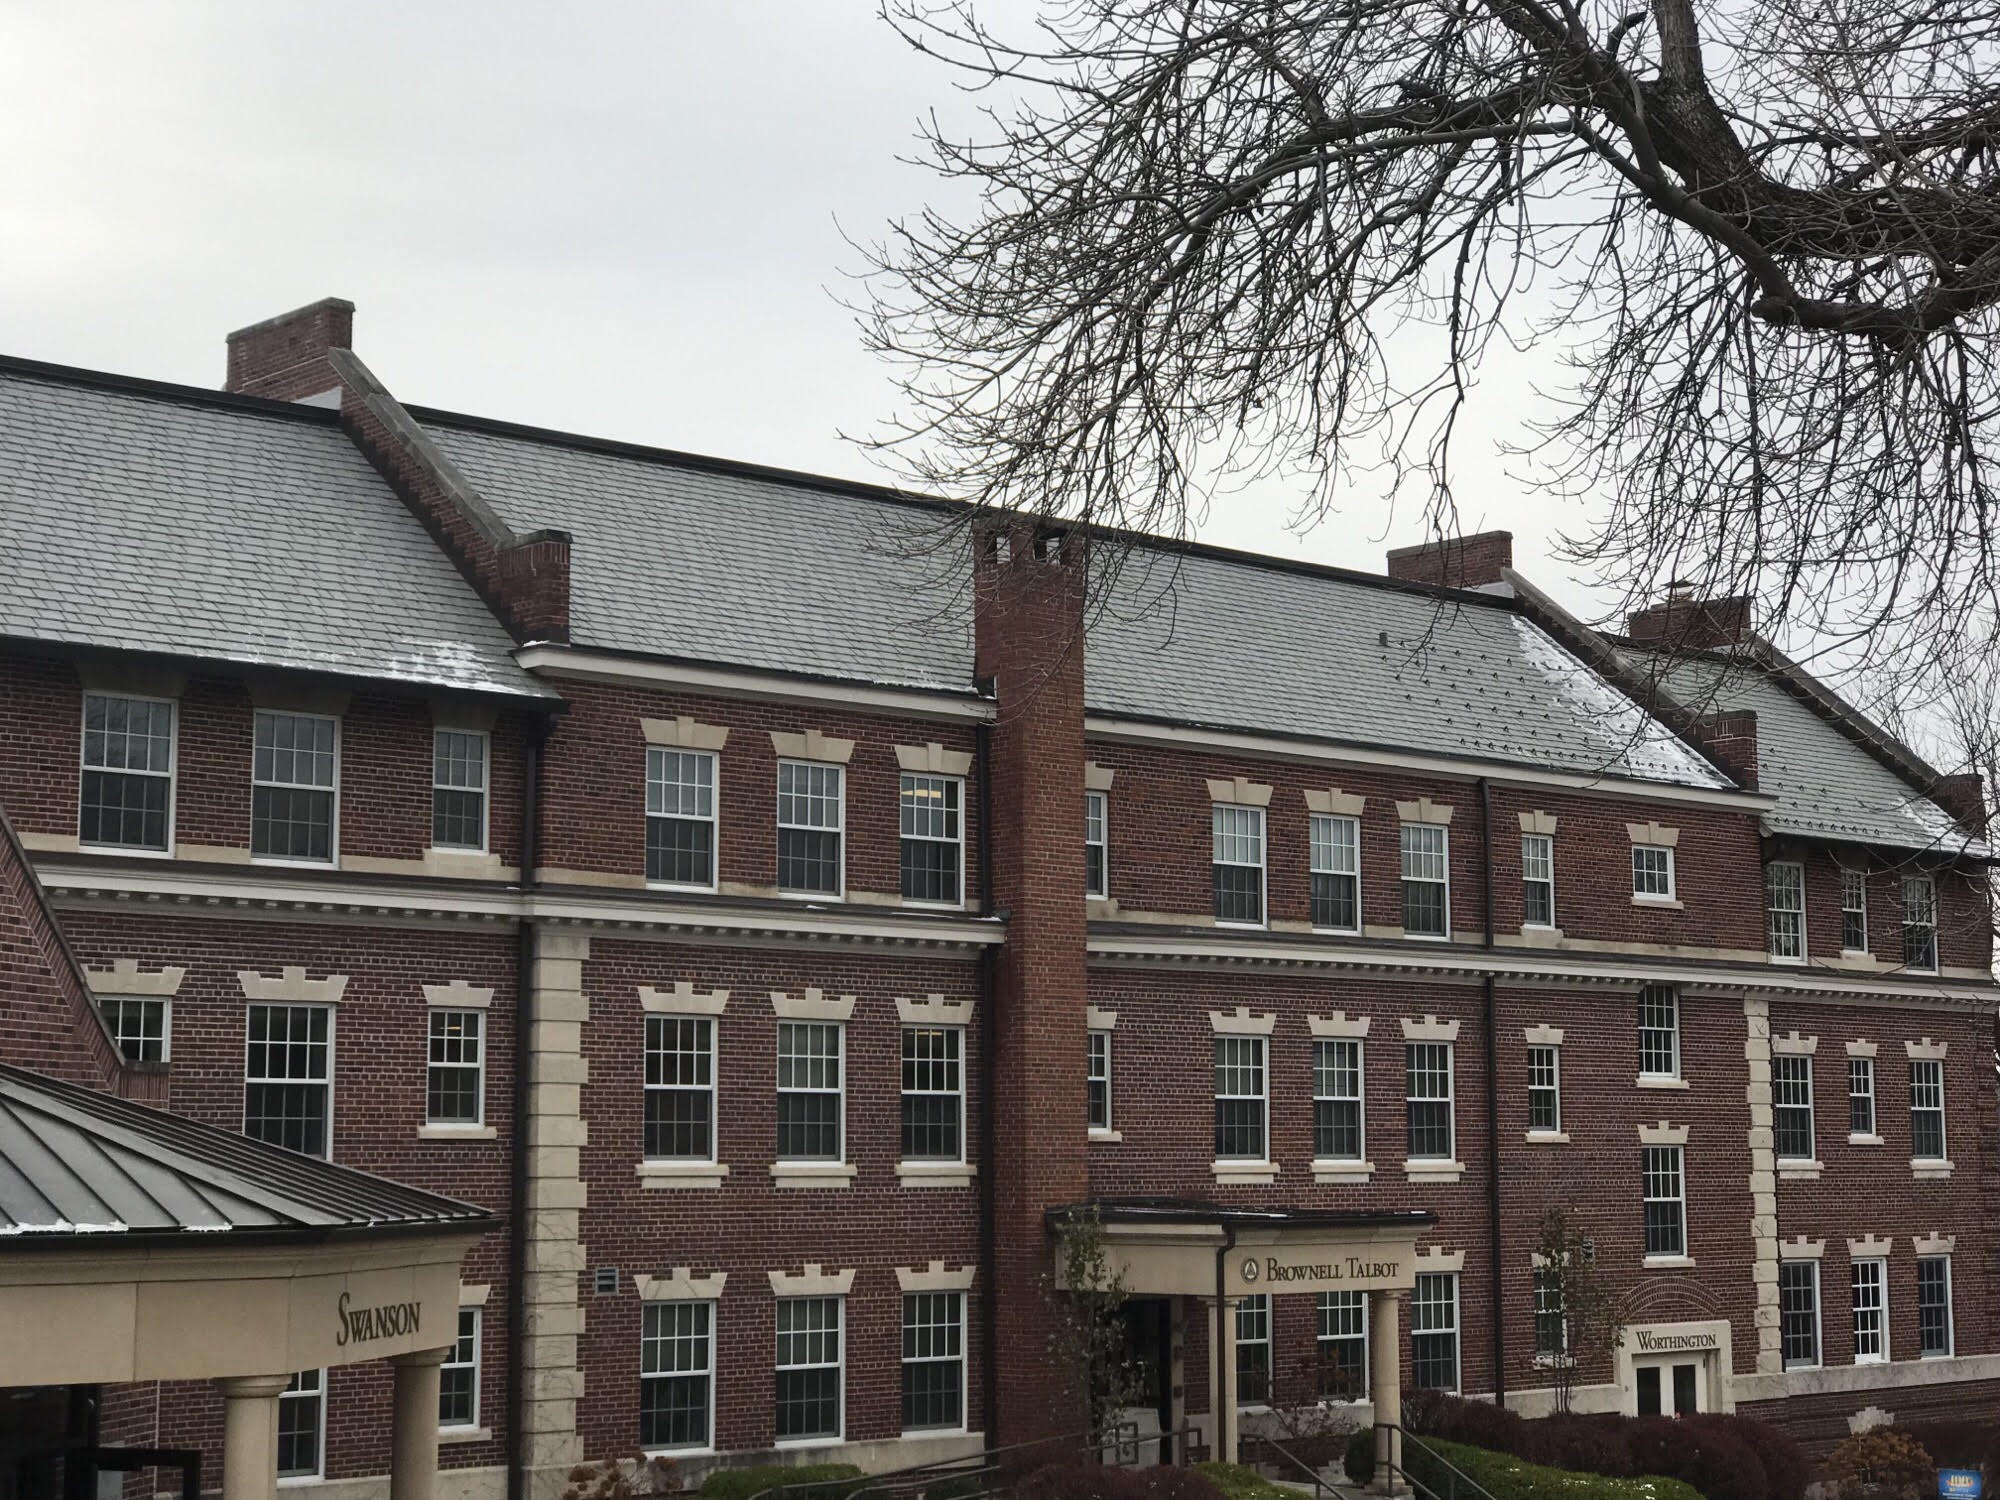 brownell talbot campus building with a davinci composite slate roof